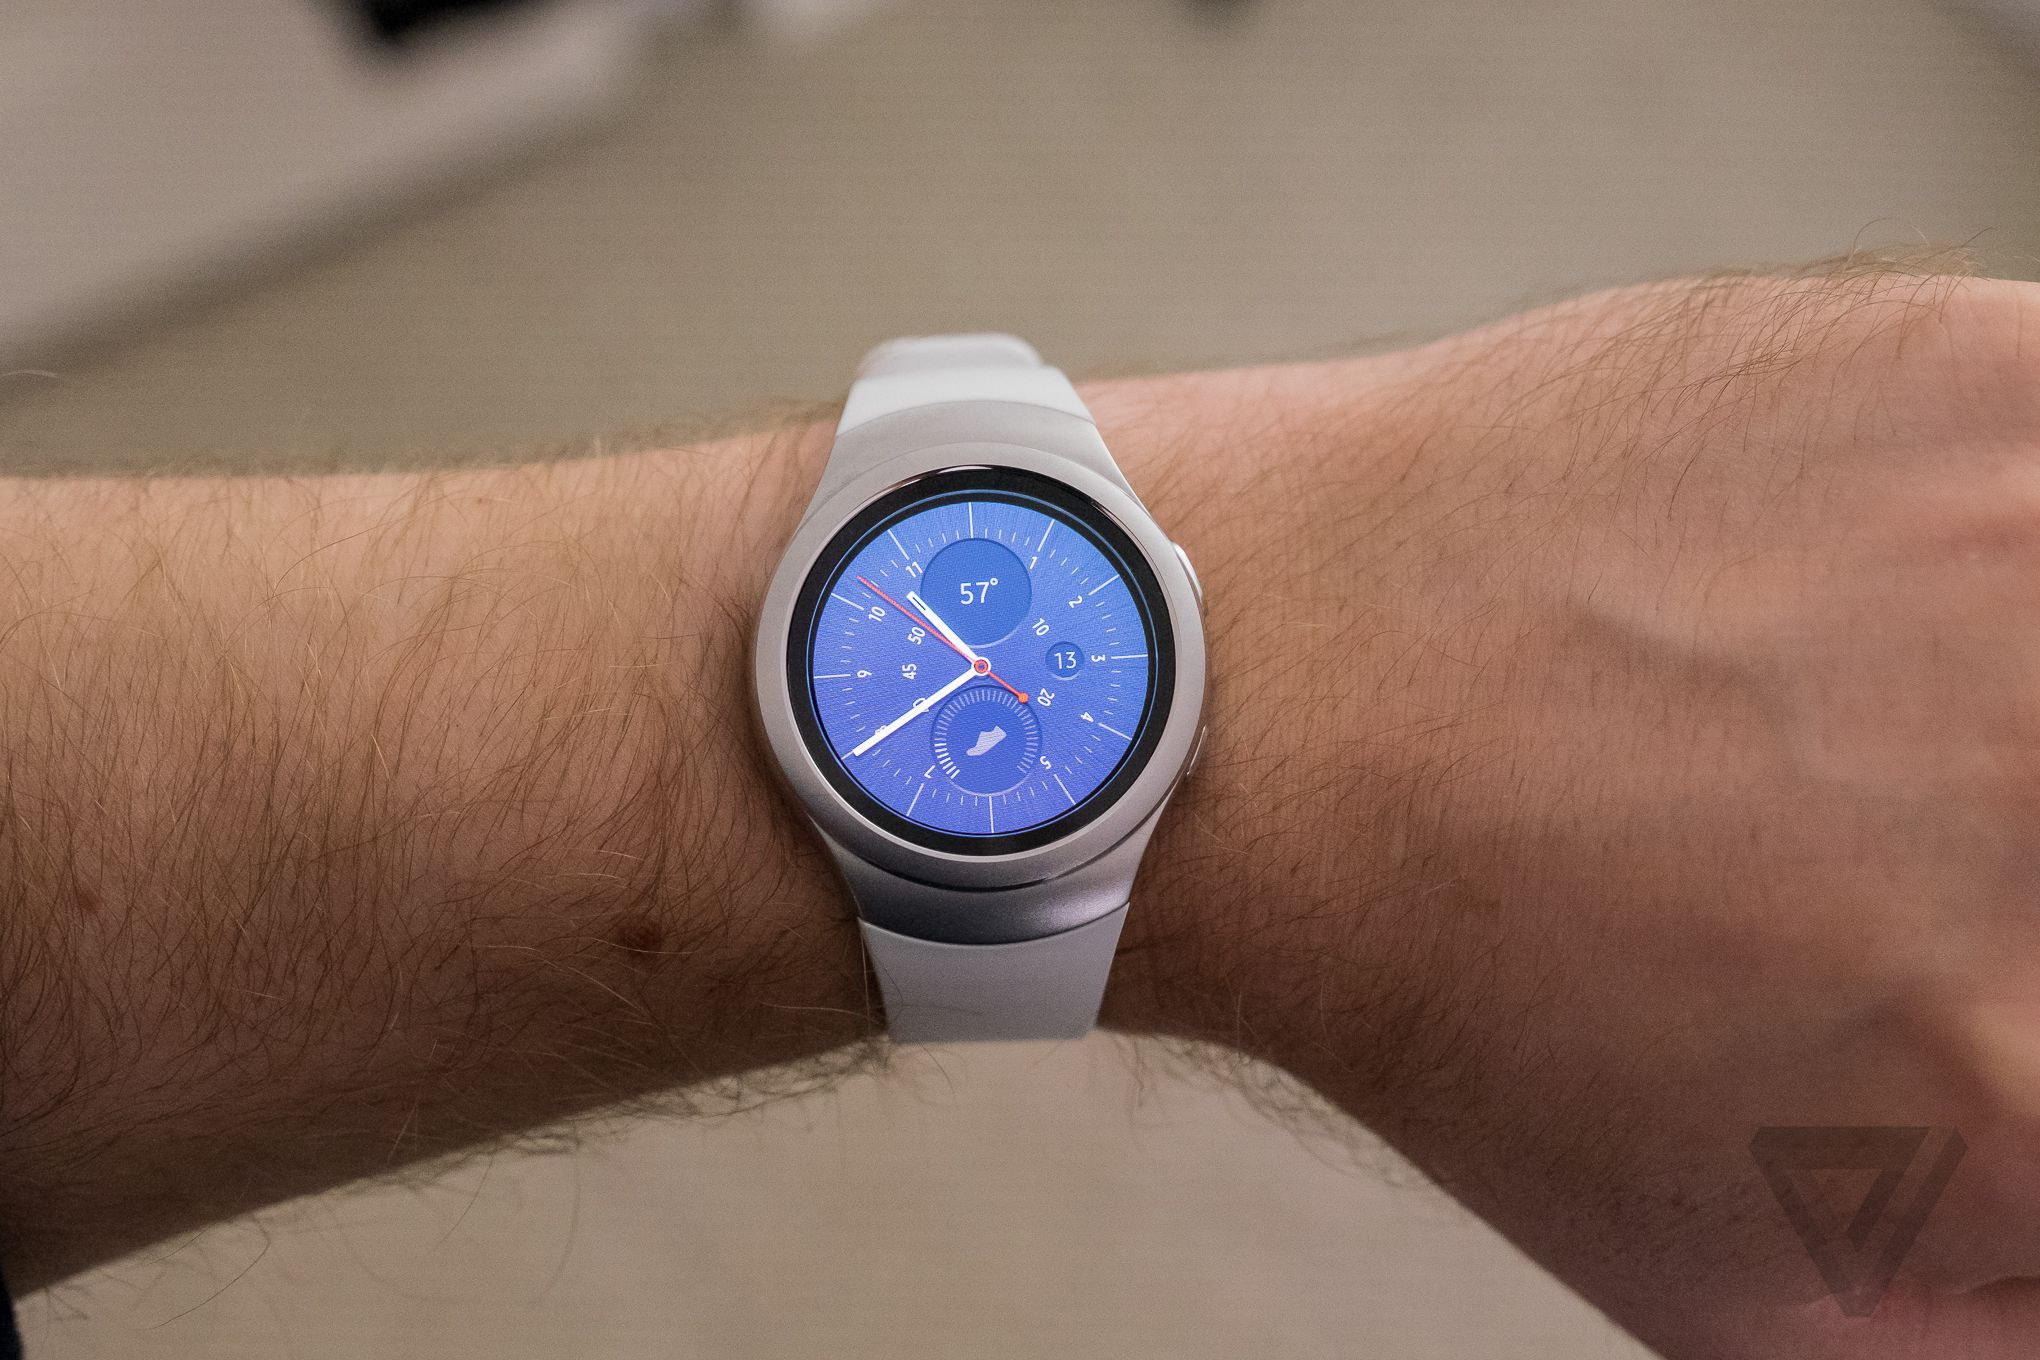 how to connect gear s to non samsung phone